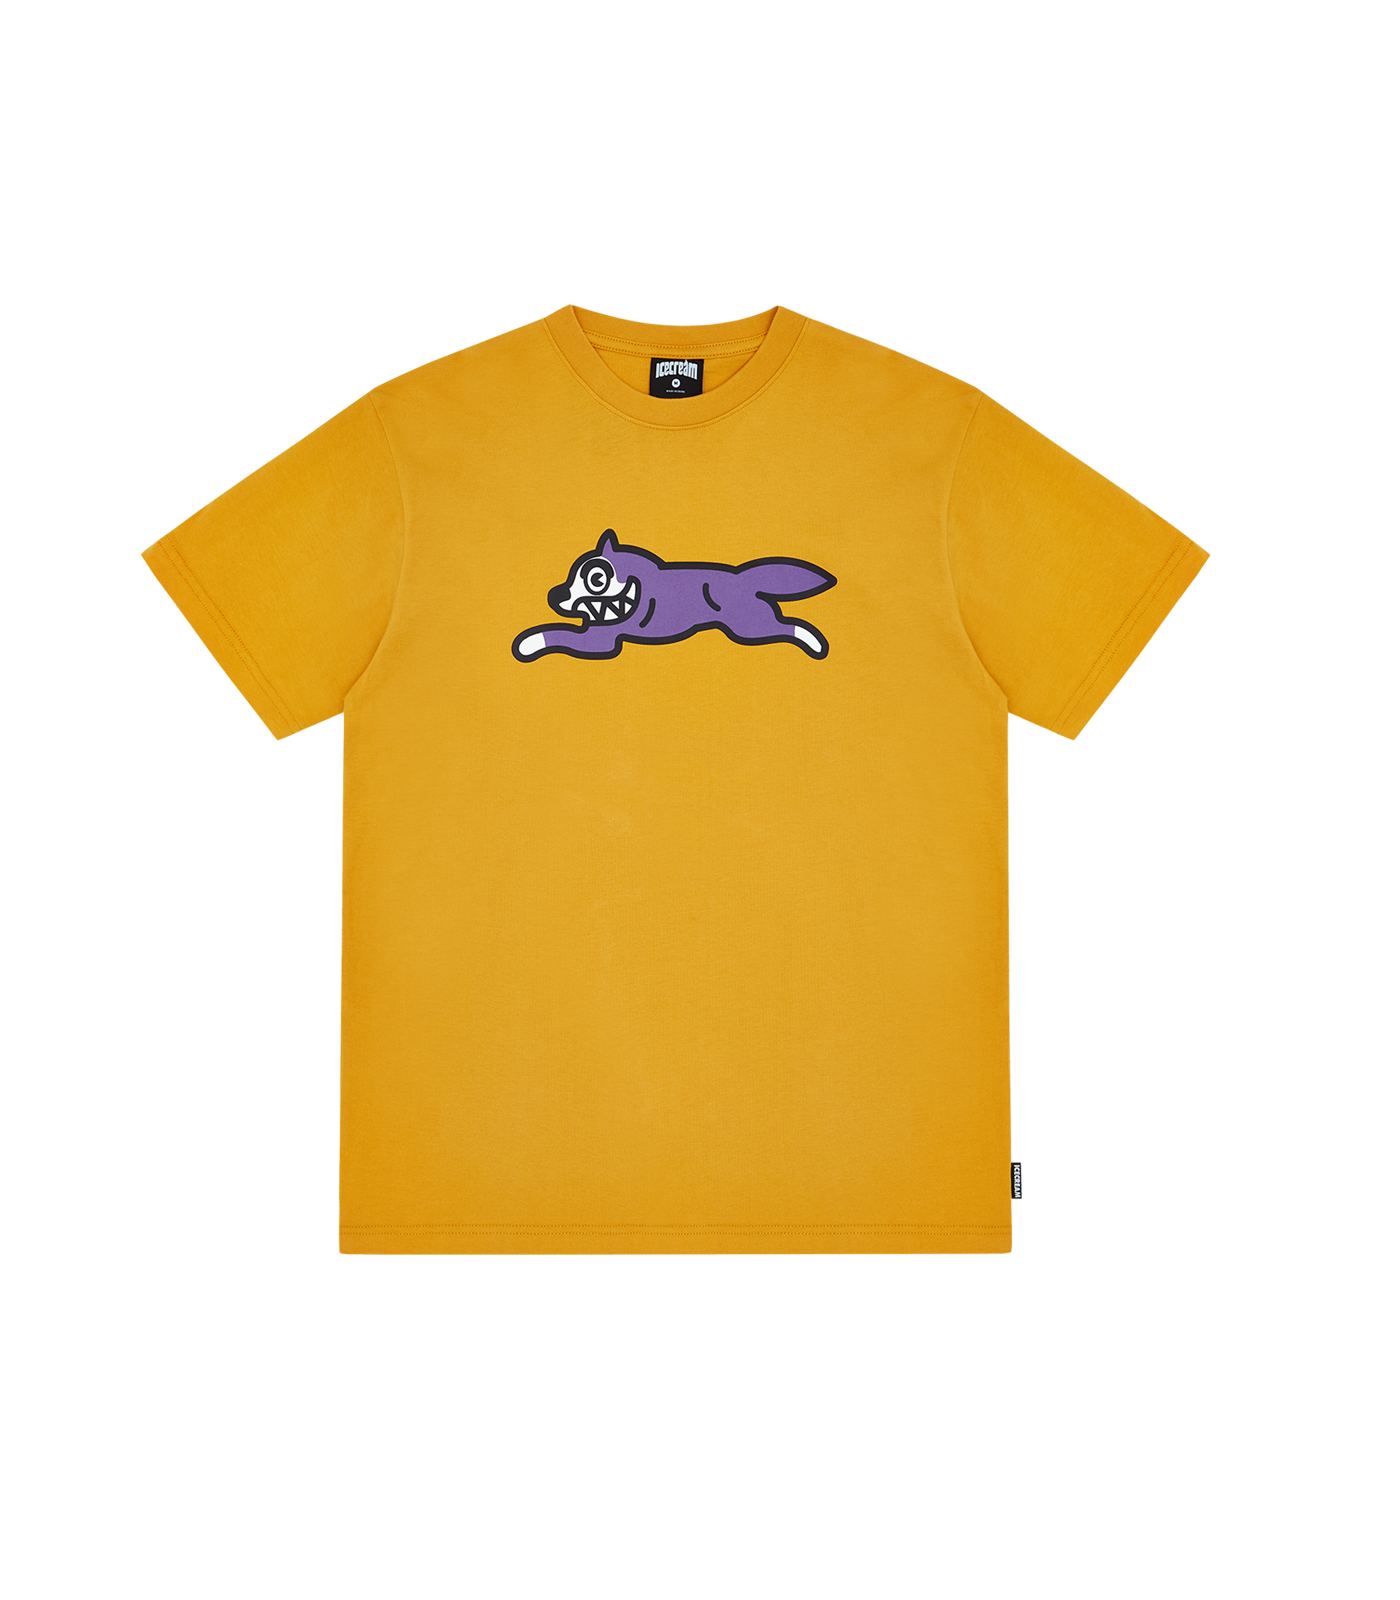 DECENZO T-SHIRT - YELLOW